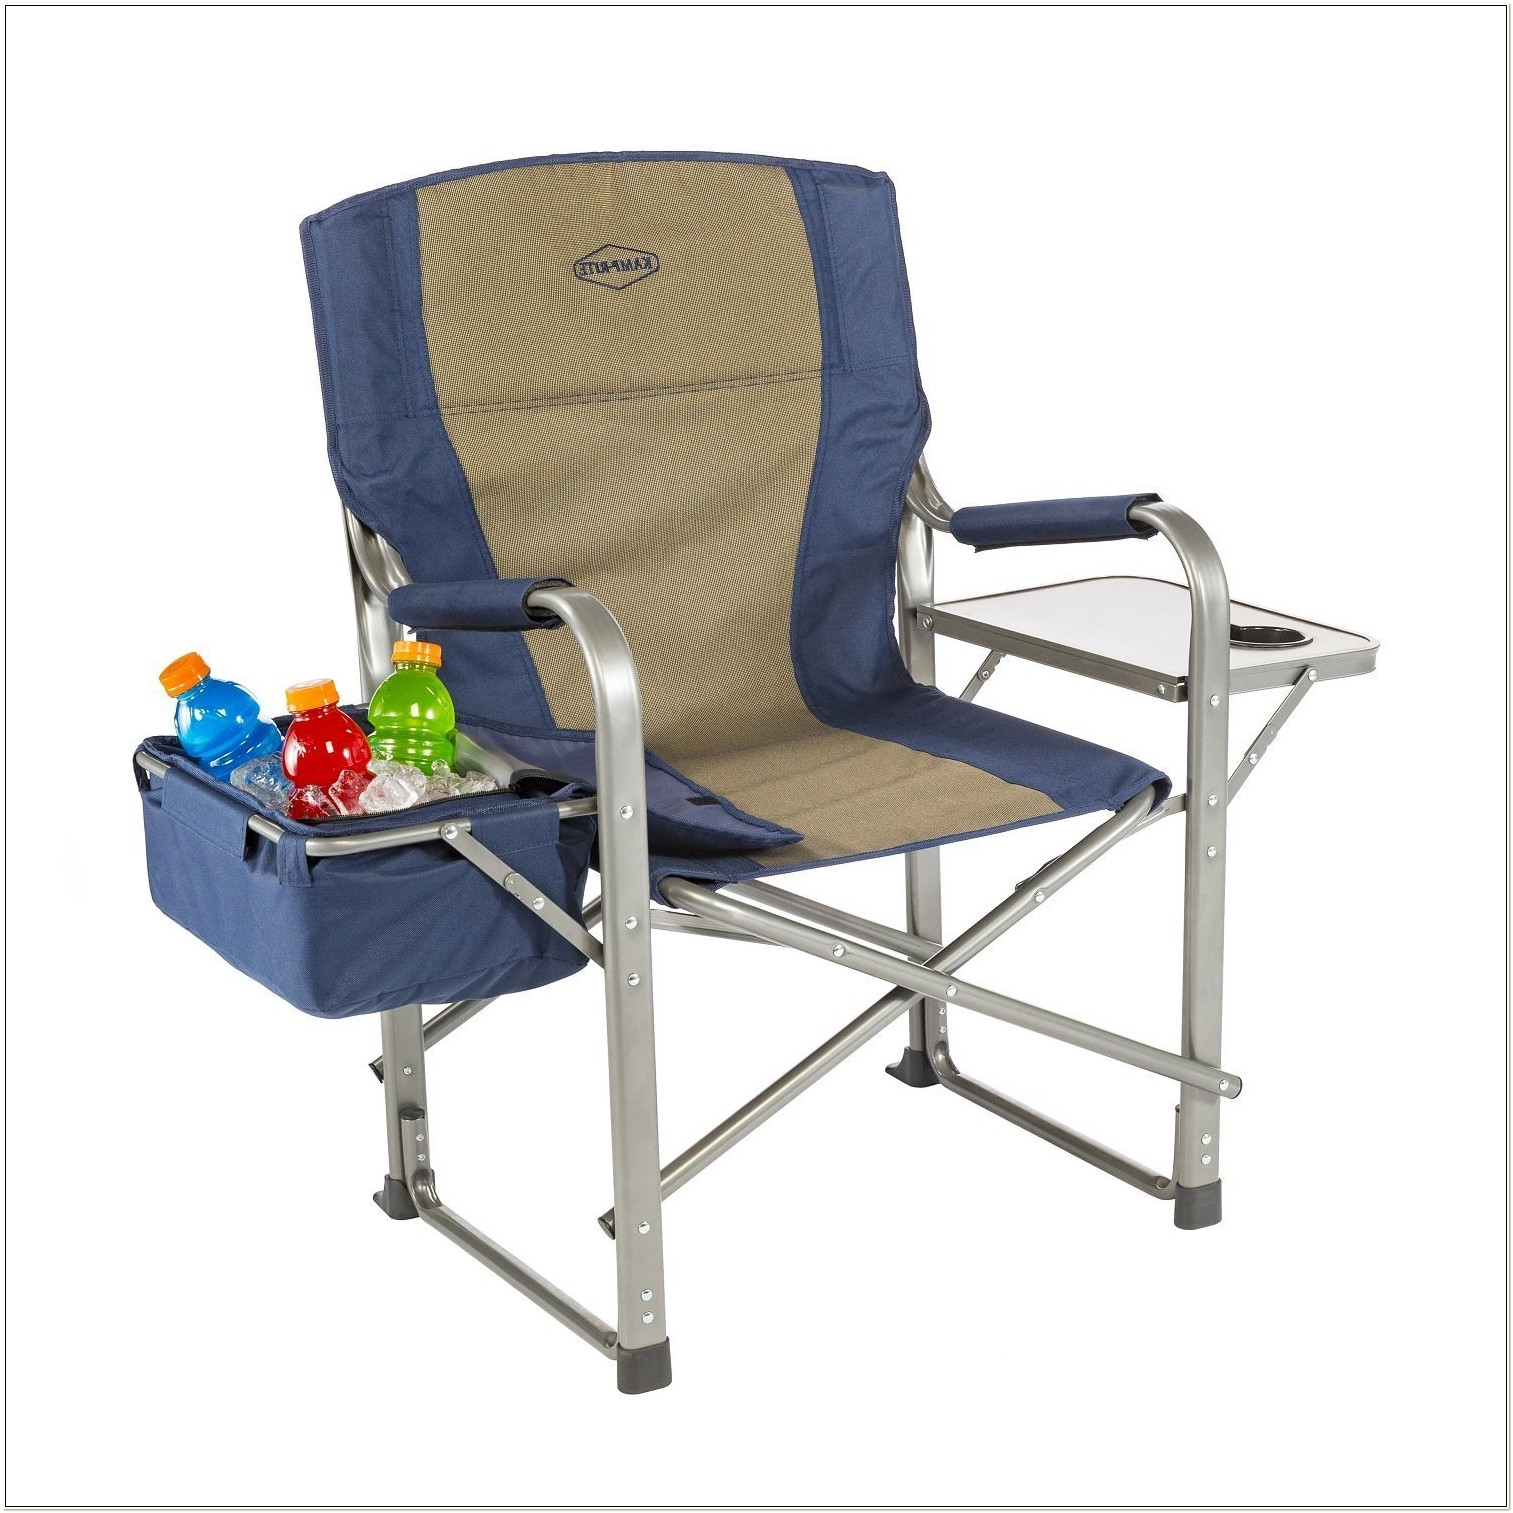 Camping Chairs With Attached Cooler